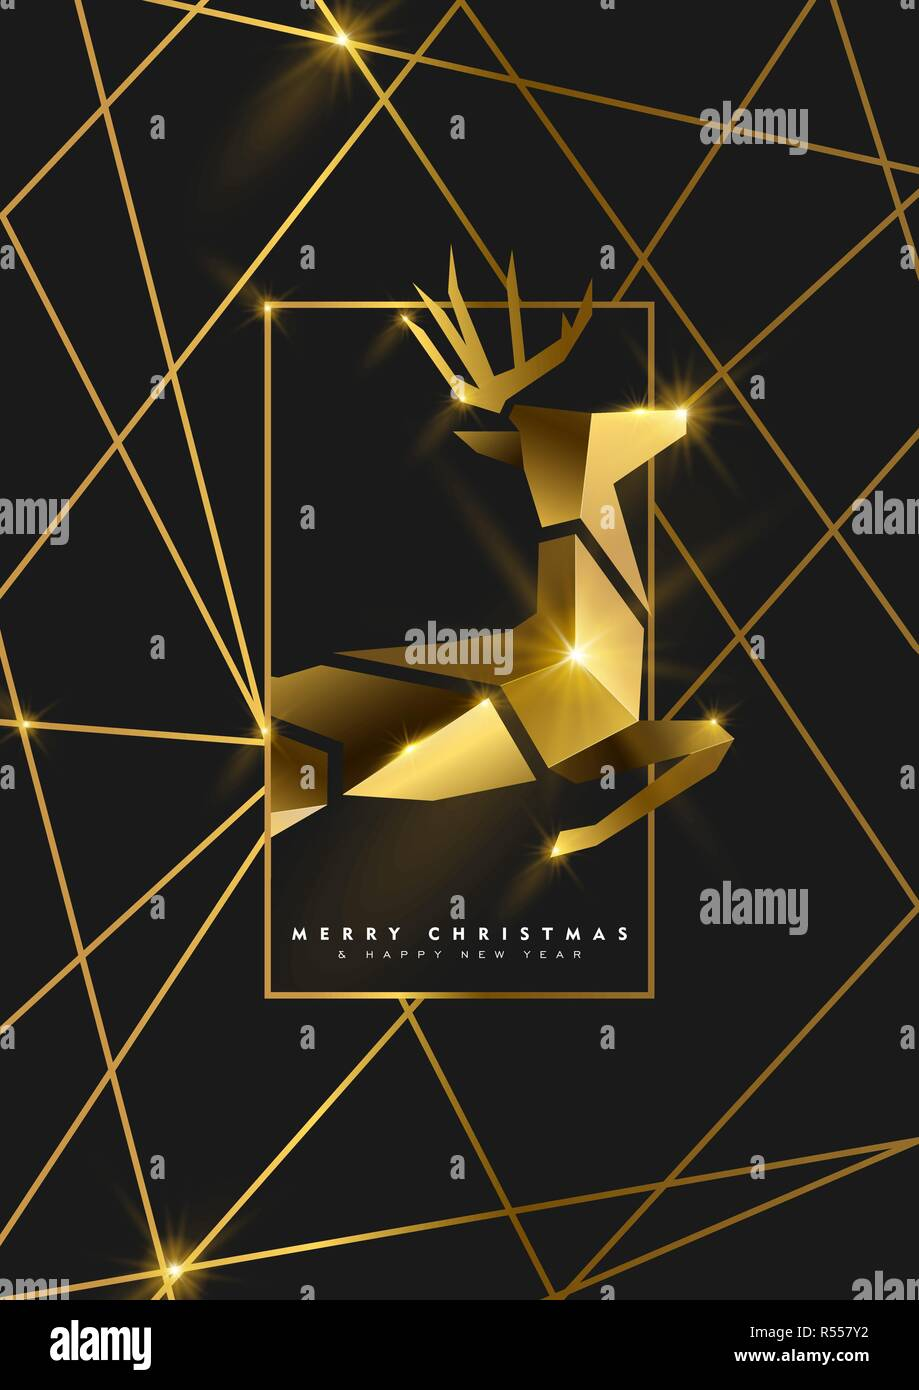 merry christmas and happy new year luxury golden greeting card illustration reindeer ornament made of solid gold in 3d art deco style